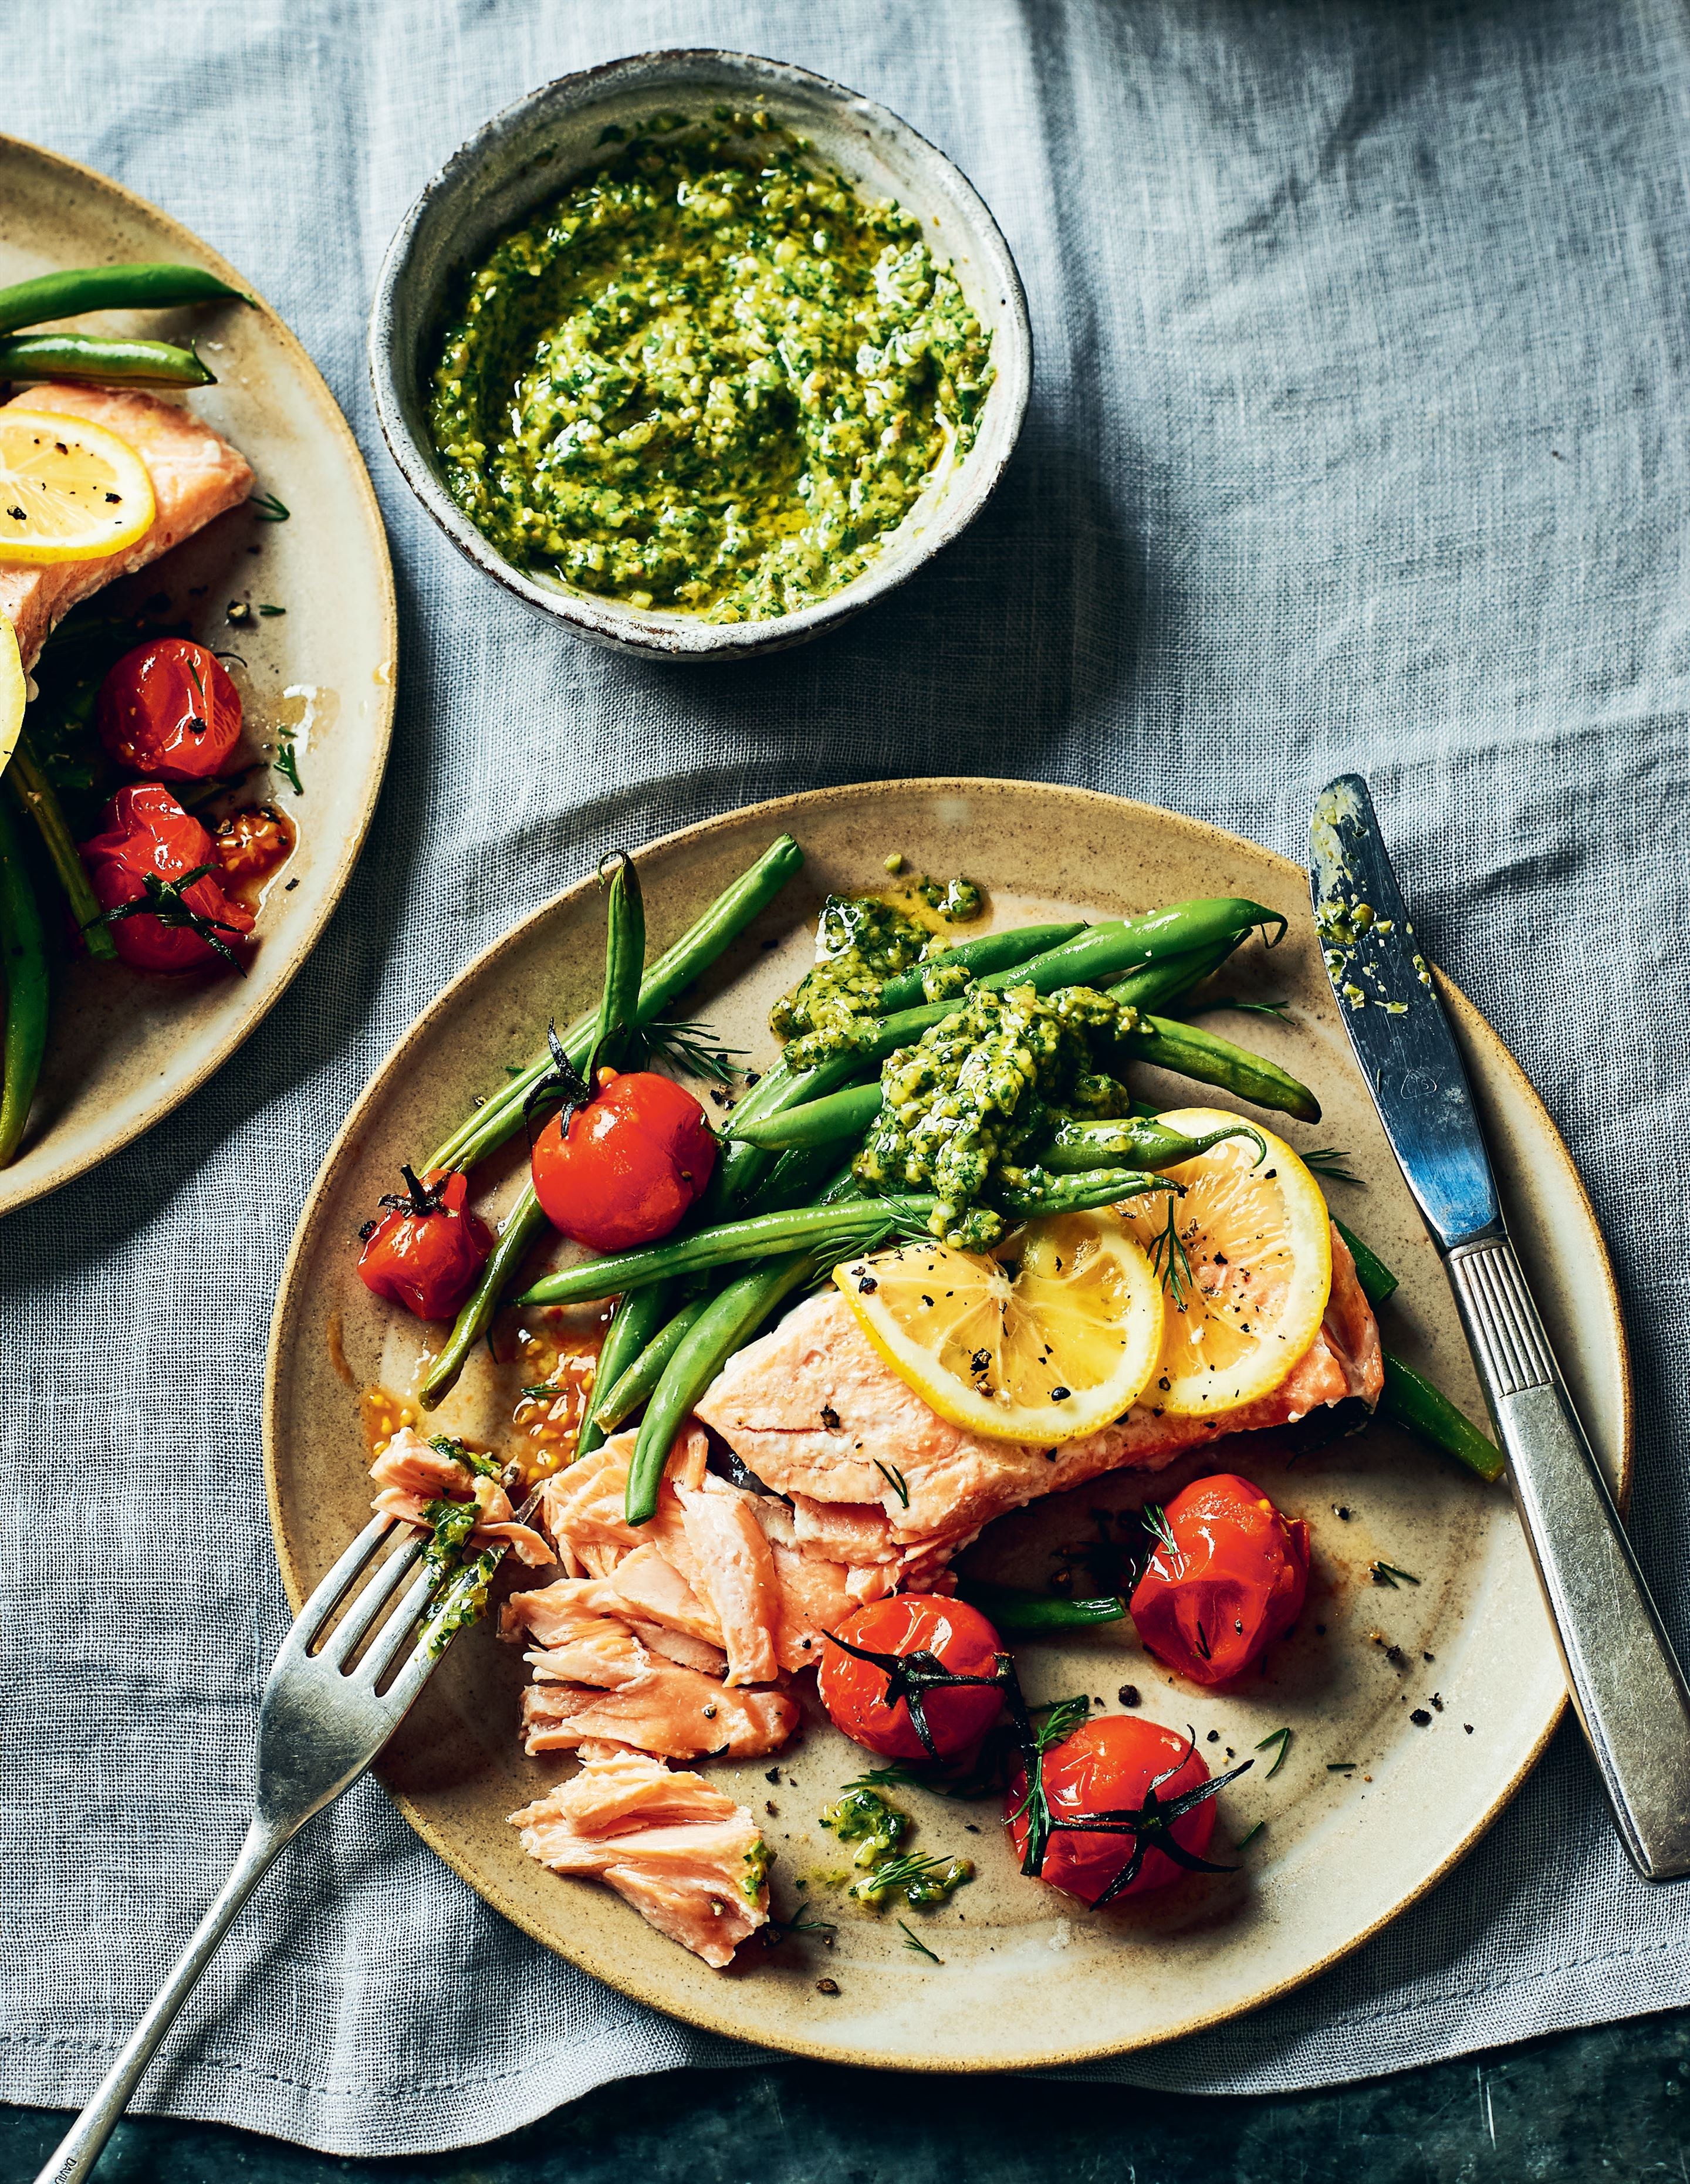 Salmon fillets with vine tomatoes, beans and green sauce